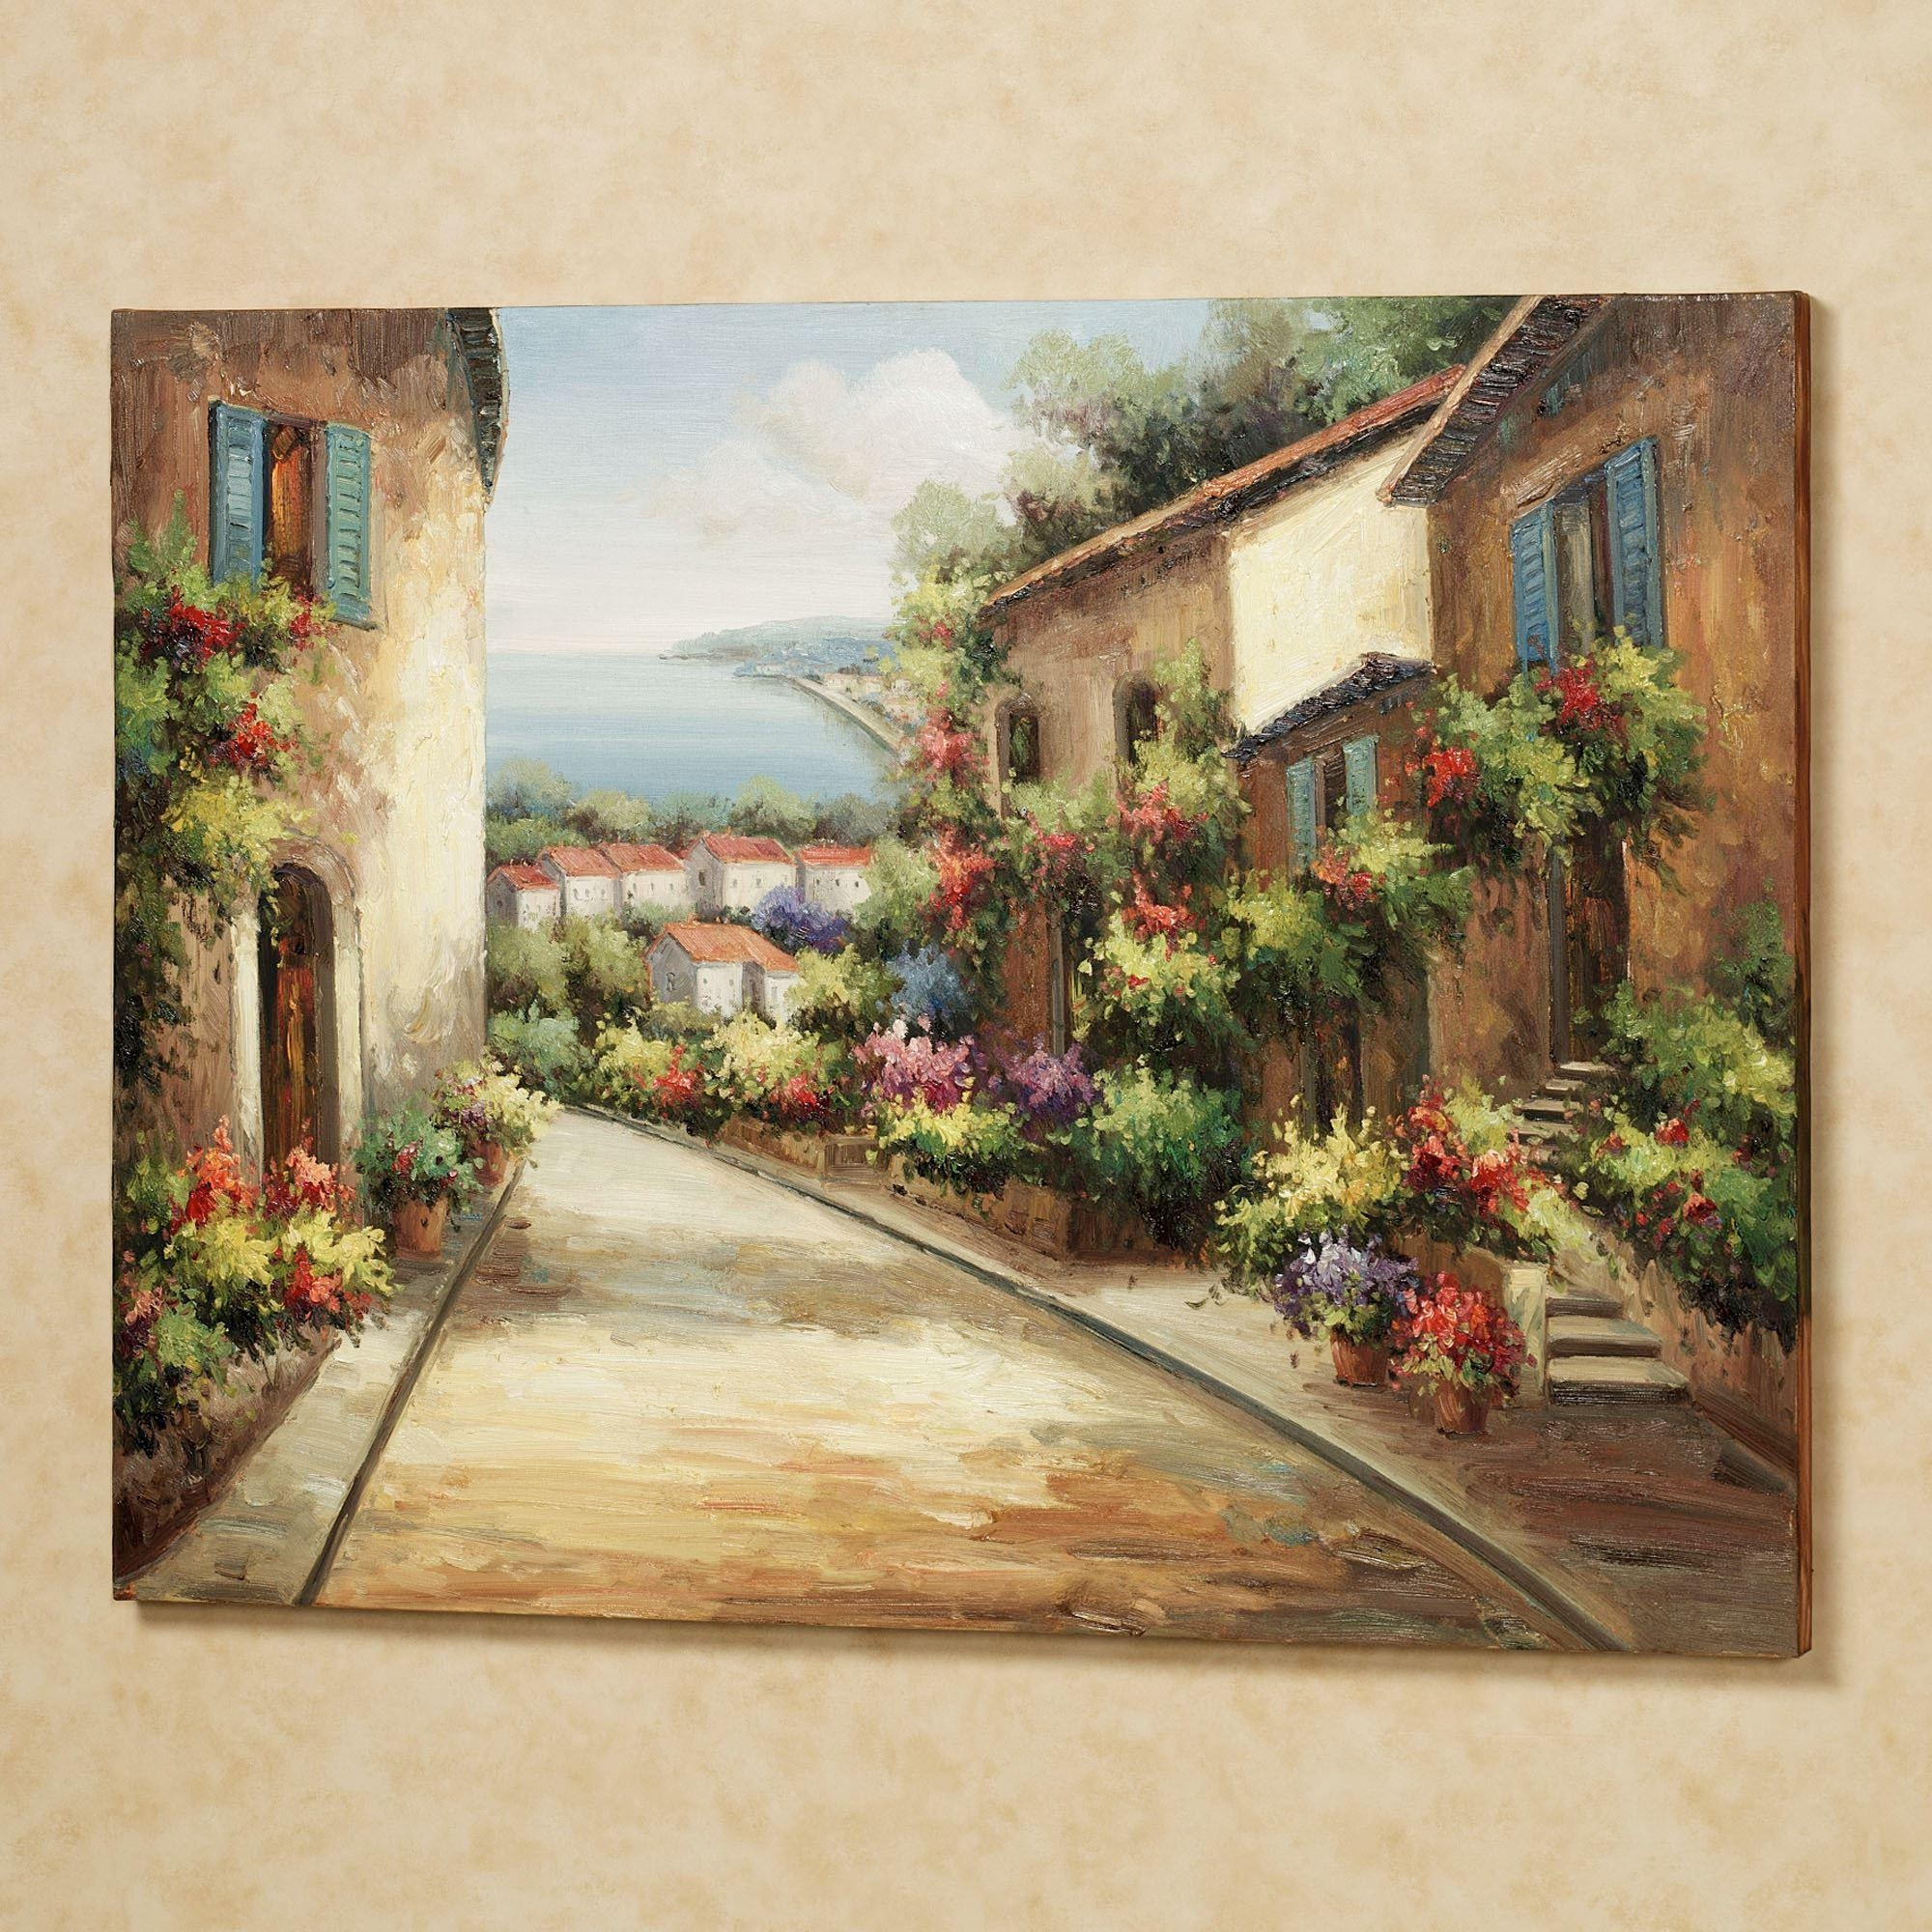 Tuscan Italian Art | Touch Of Class Intended For Tuscan Italian Canvas Wall Art (View 3 of 20)